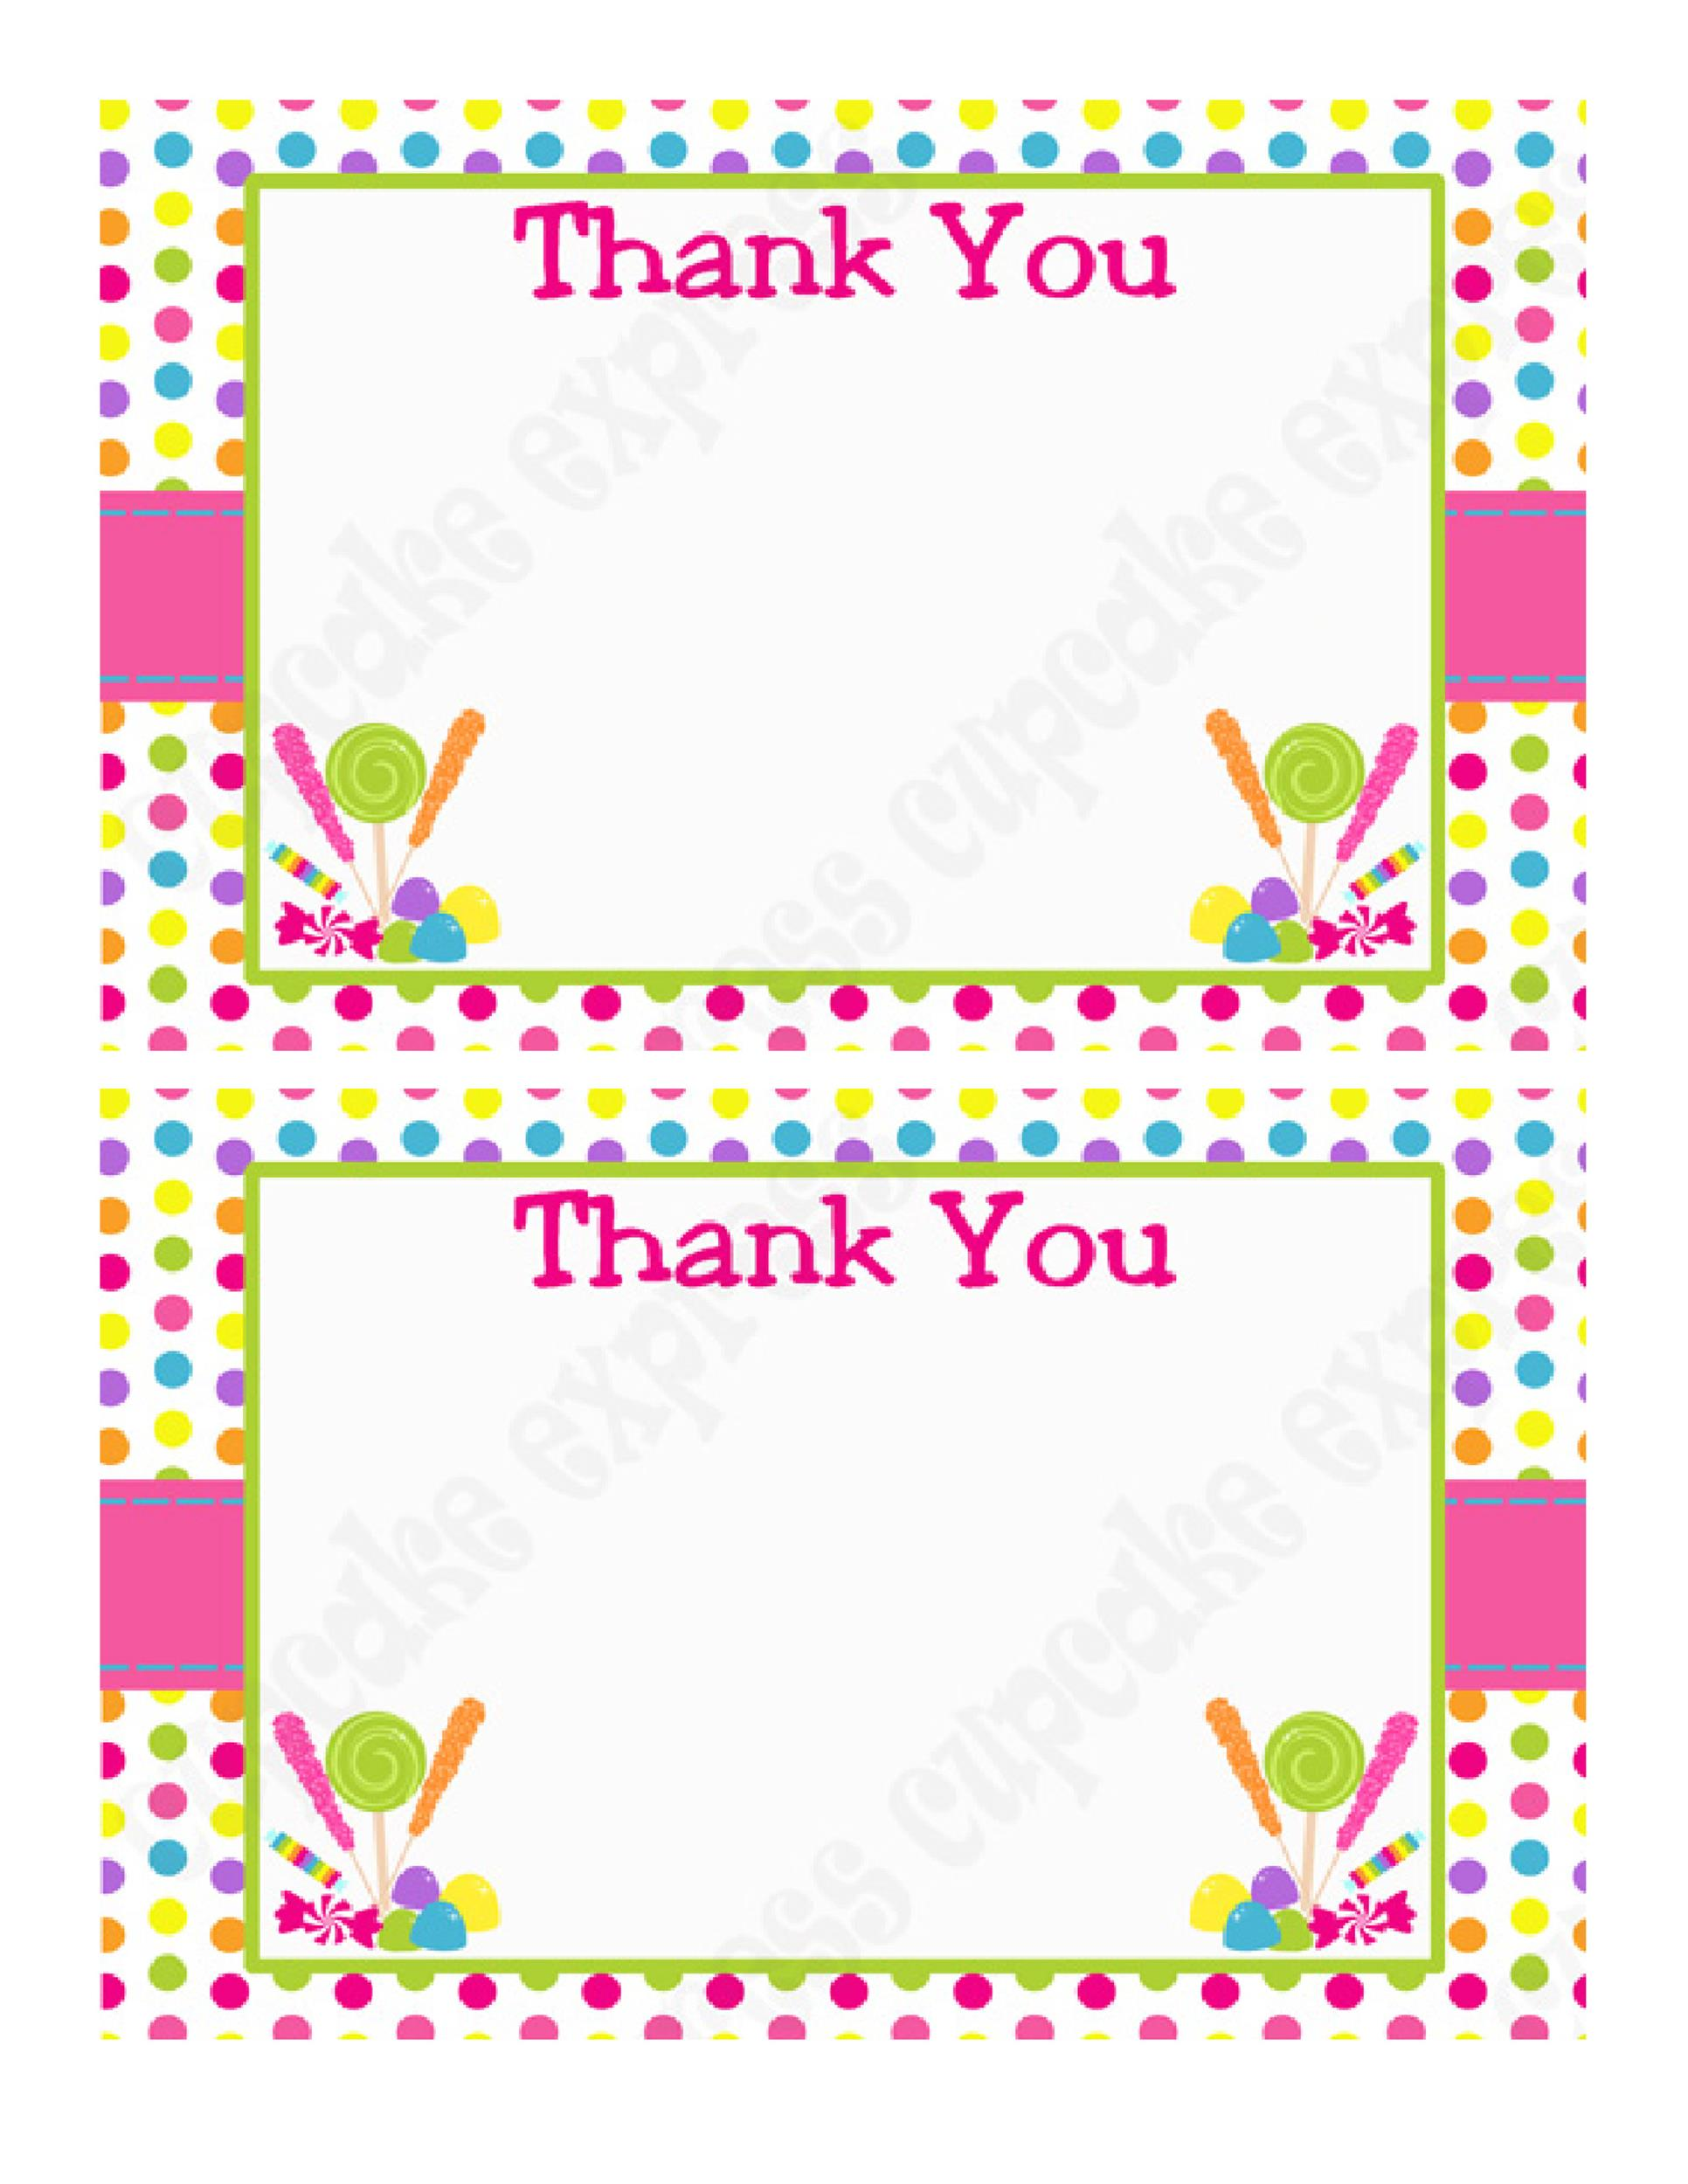 graphic regarding Free Printable Thank You known as 30+ Absolutely free Printable Thank Oneself Card Templates (Marriage